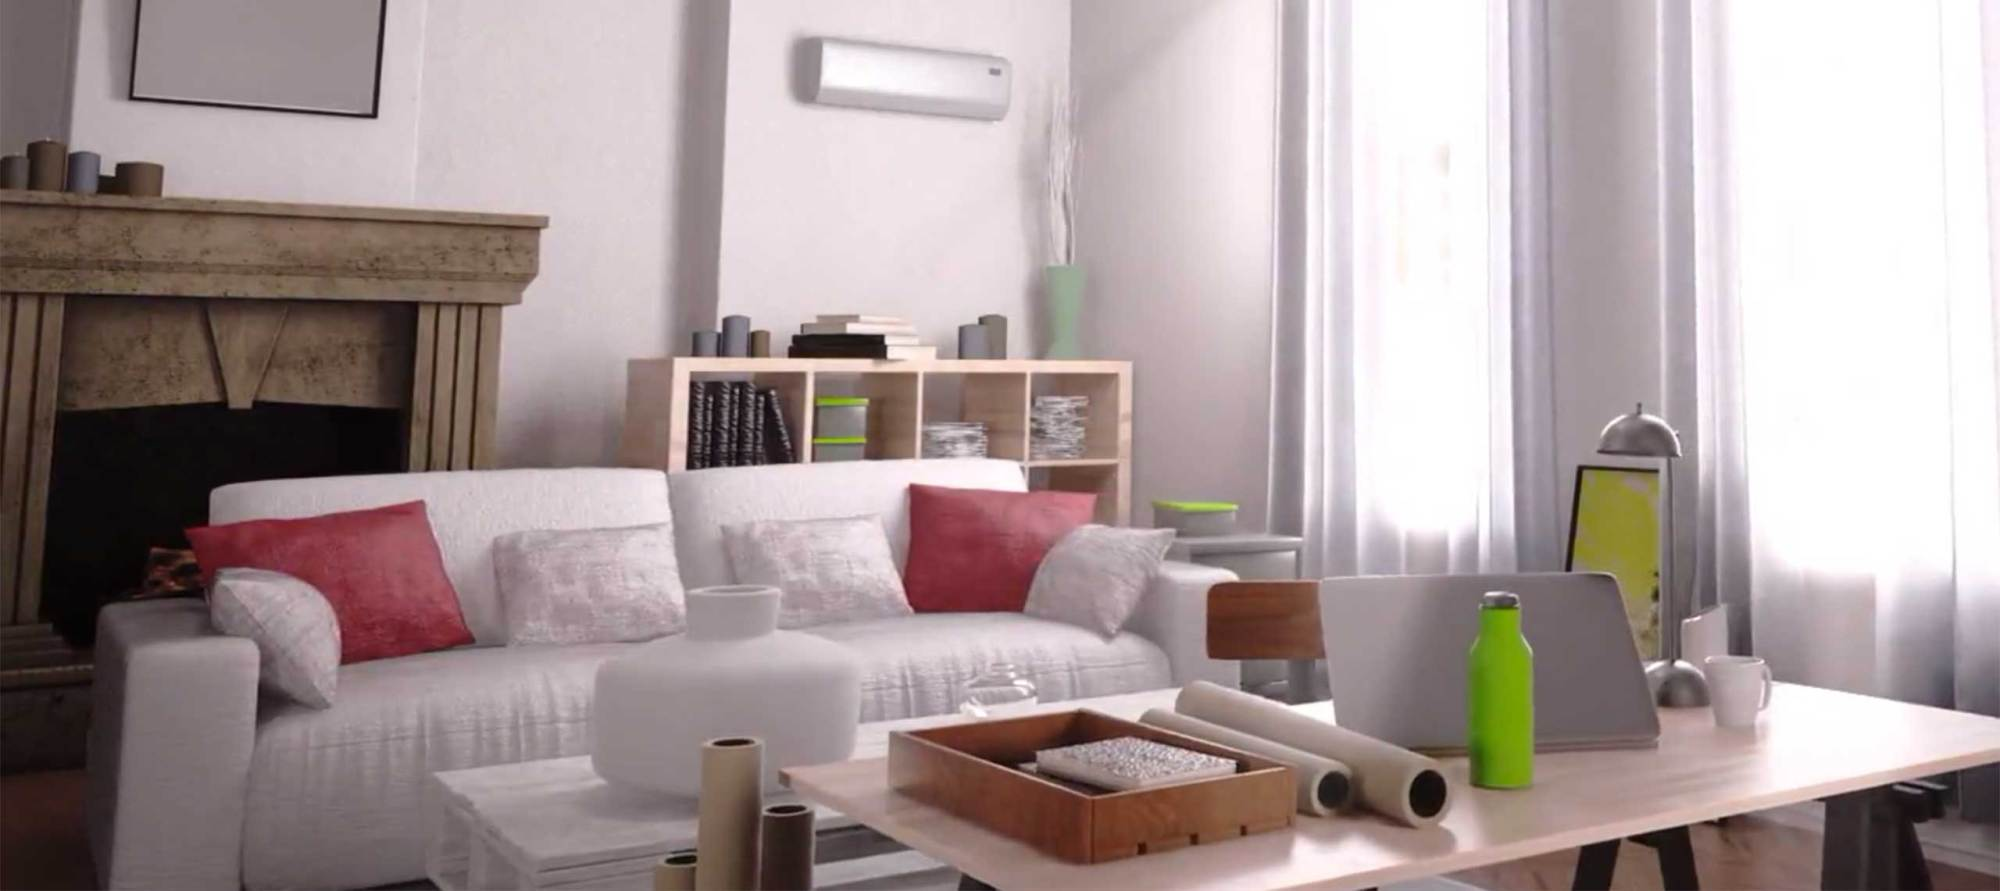 hight resolution of ductless cooling system